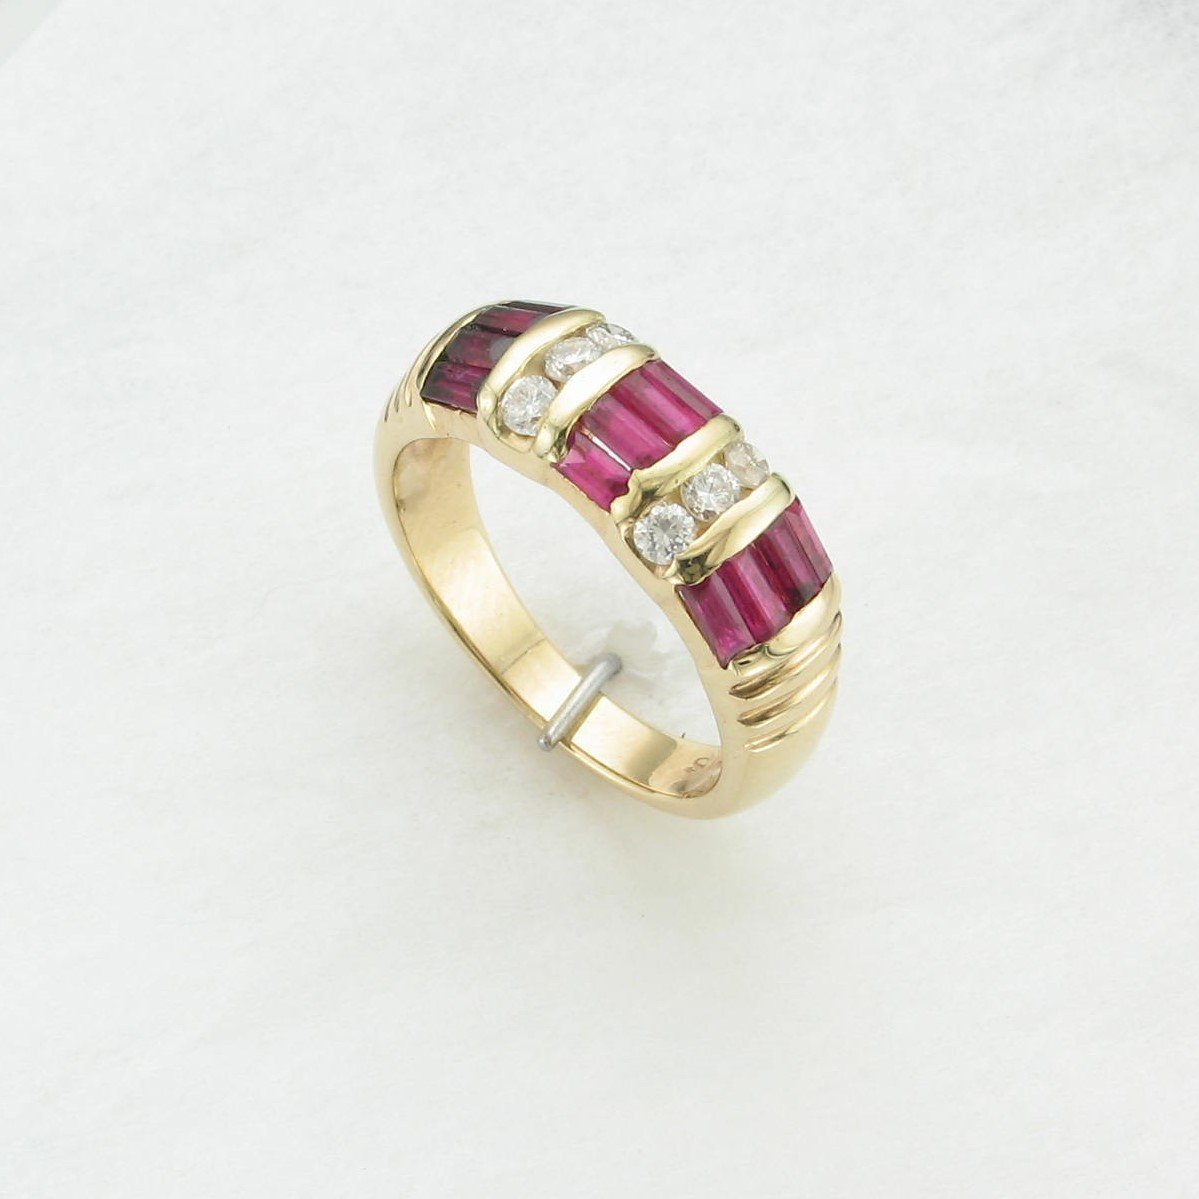 1.20 tcw Ruby and Diamond  Ring set in 14K Yellow Gold